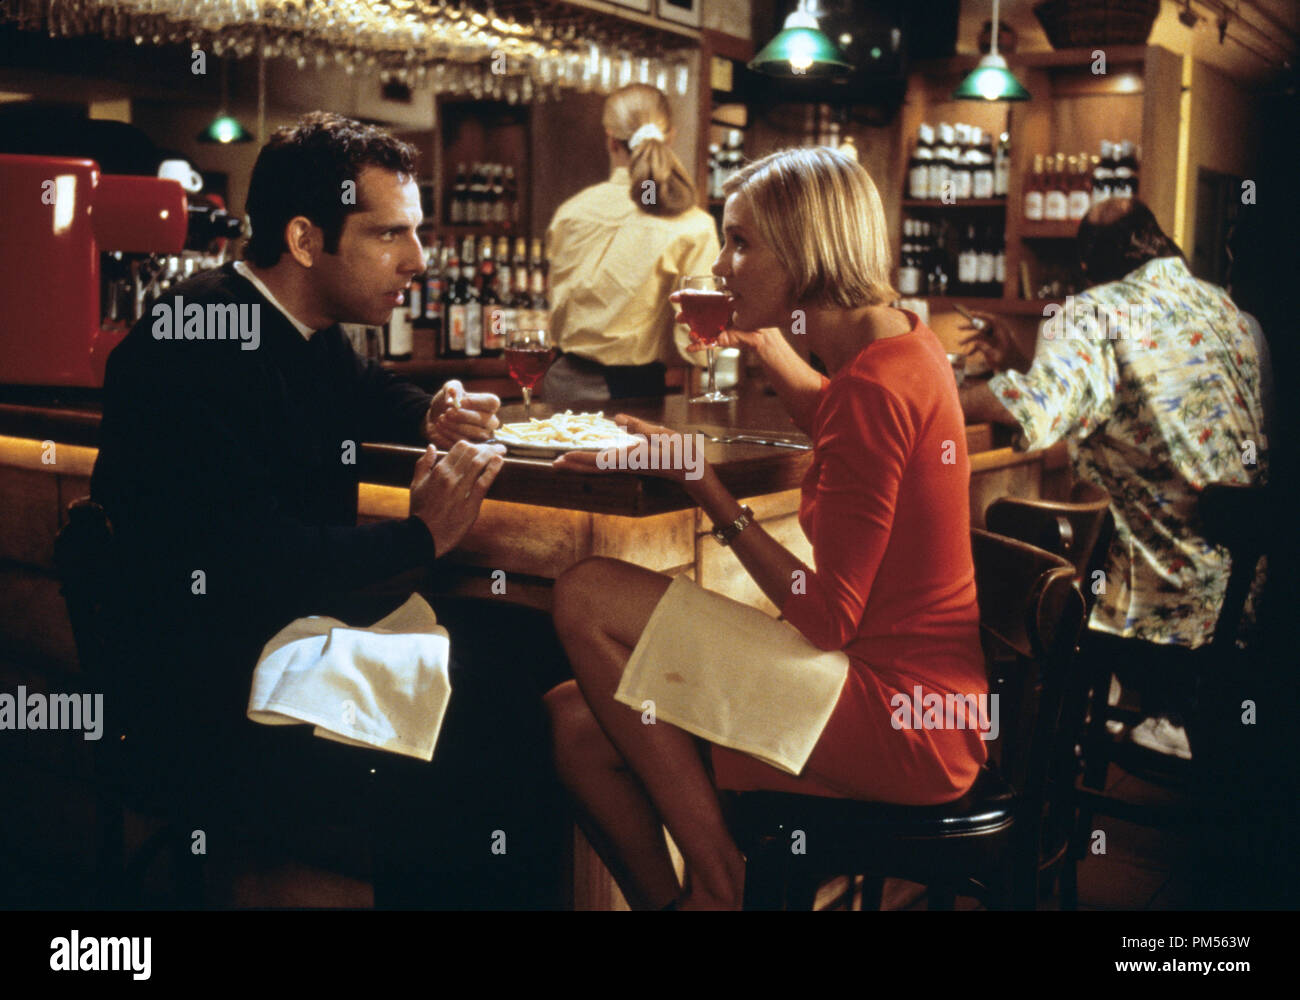 'There's Something About Mary' 1998 Ben Stiller, Cameron Diaz - Stock Image